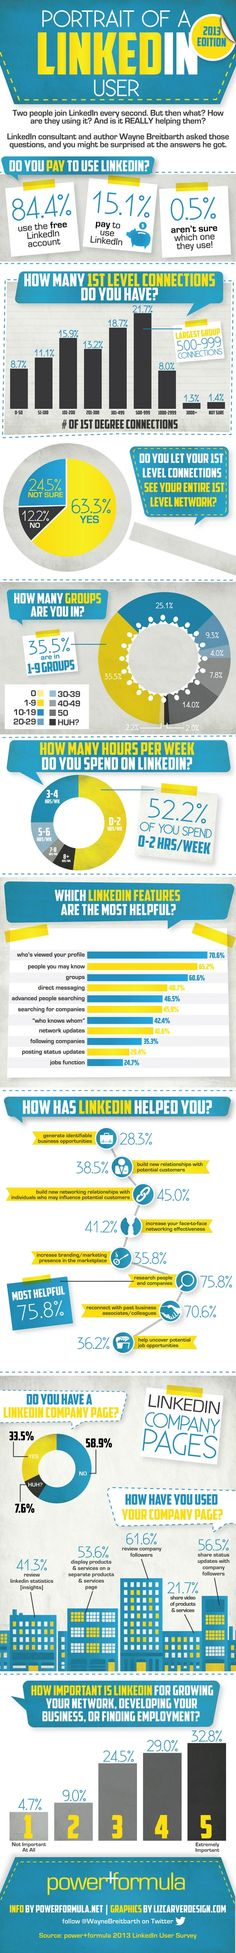 How are people using LinkedIn? [Infographic]